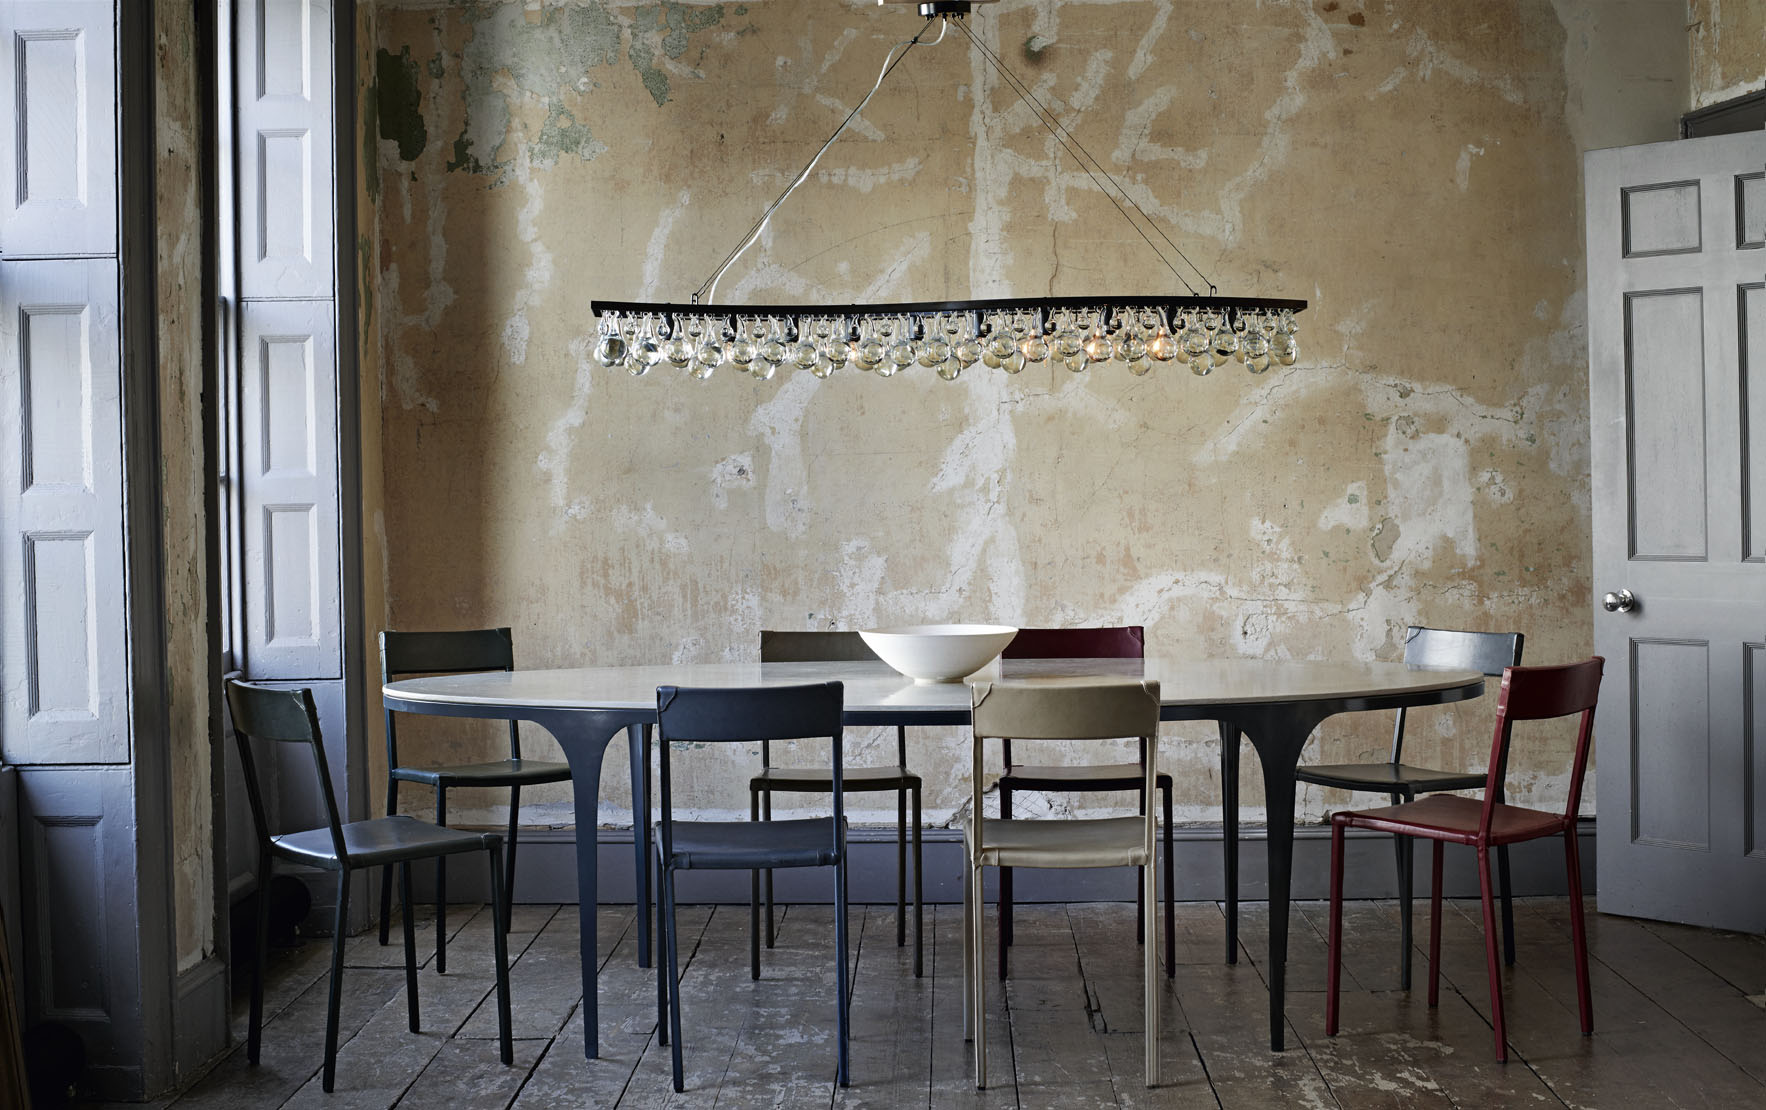 Shopping interiors the pimlico road association ochre are guided by a fascination with materials a deep appreciation of craftsmanship and a desire to create understated arubaitofo Images